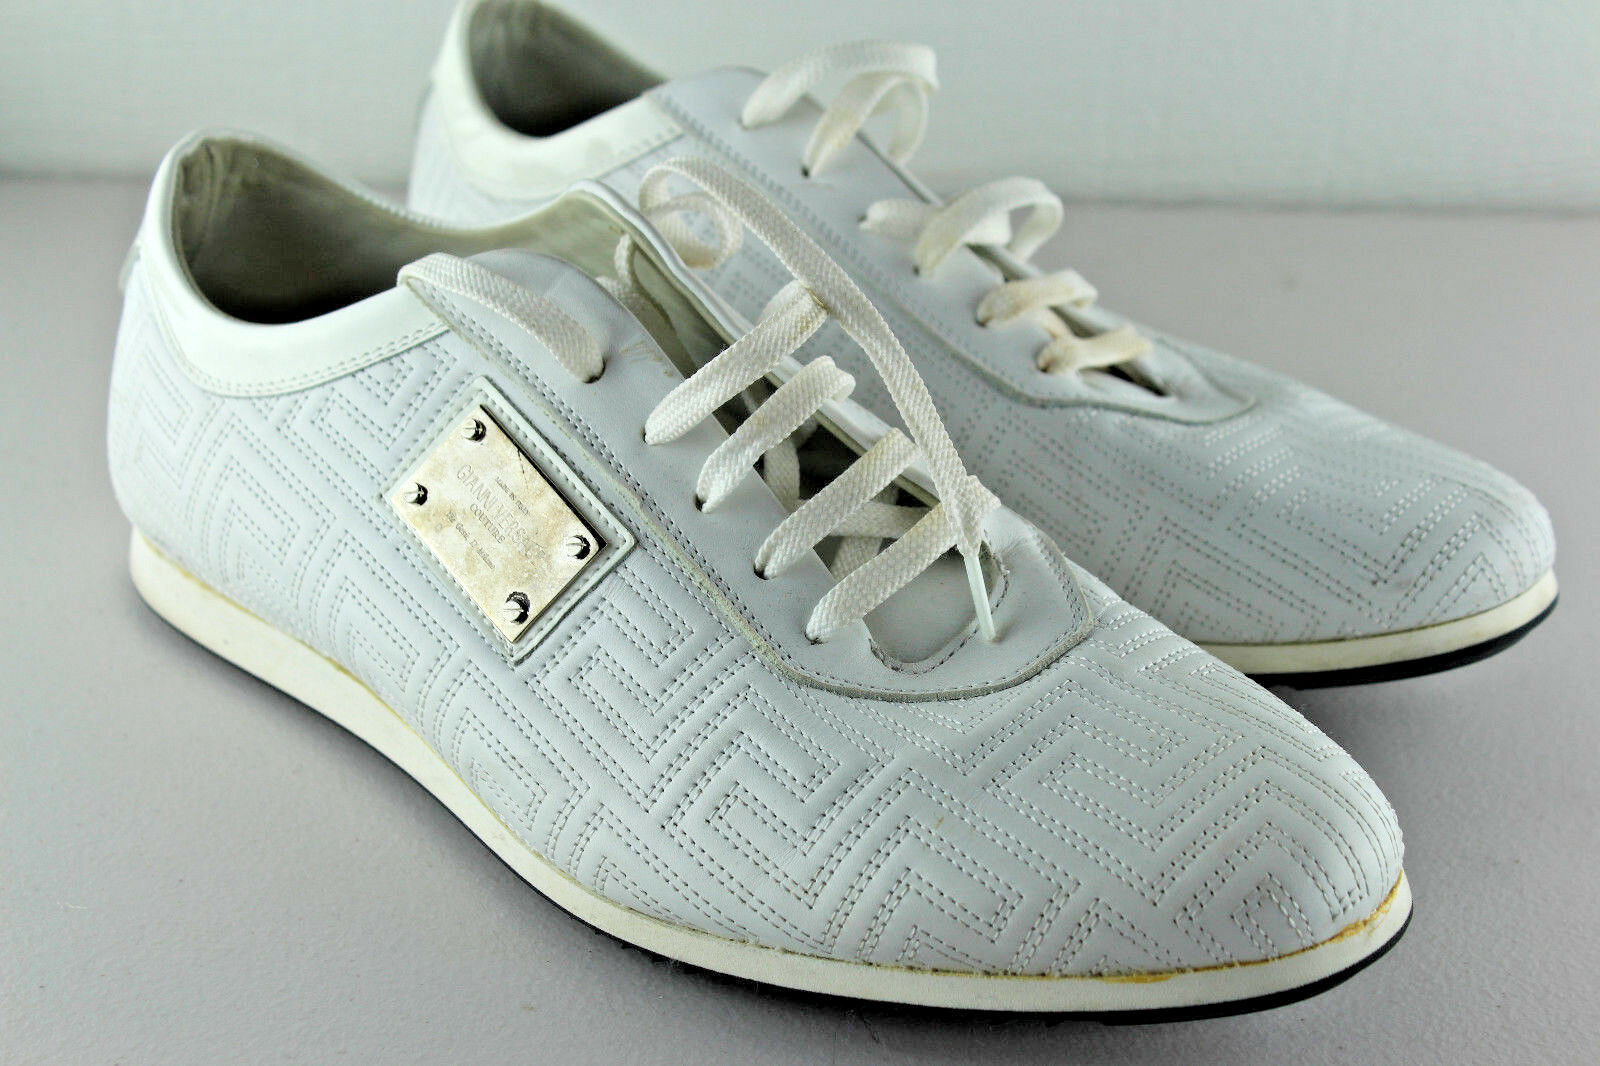 Auth Gianni Versace Couture Quilted Woven White Leather Sneakers 42.5 US 9.5